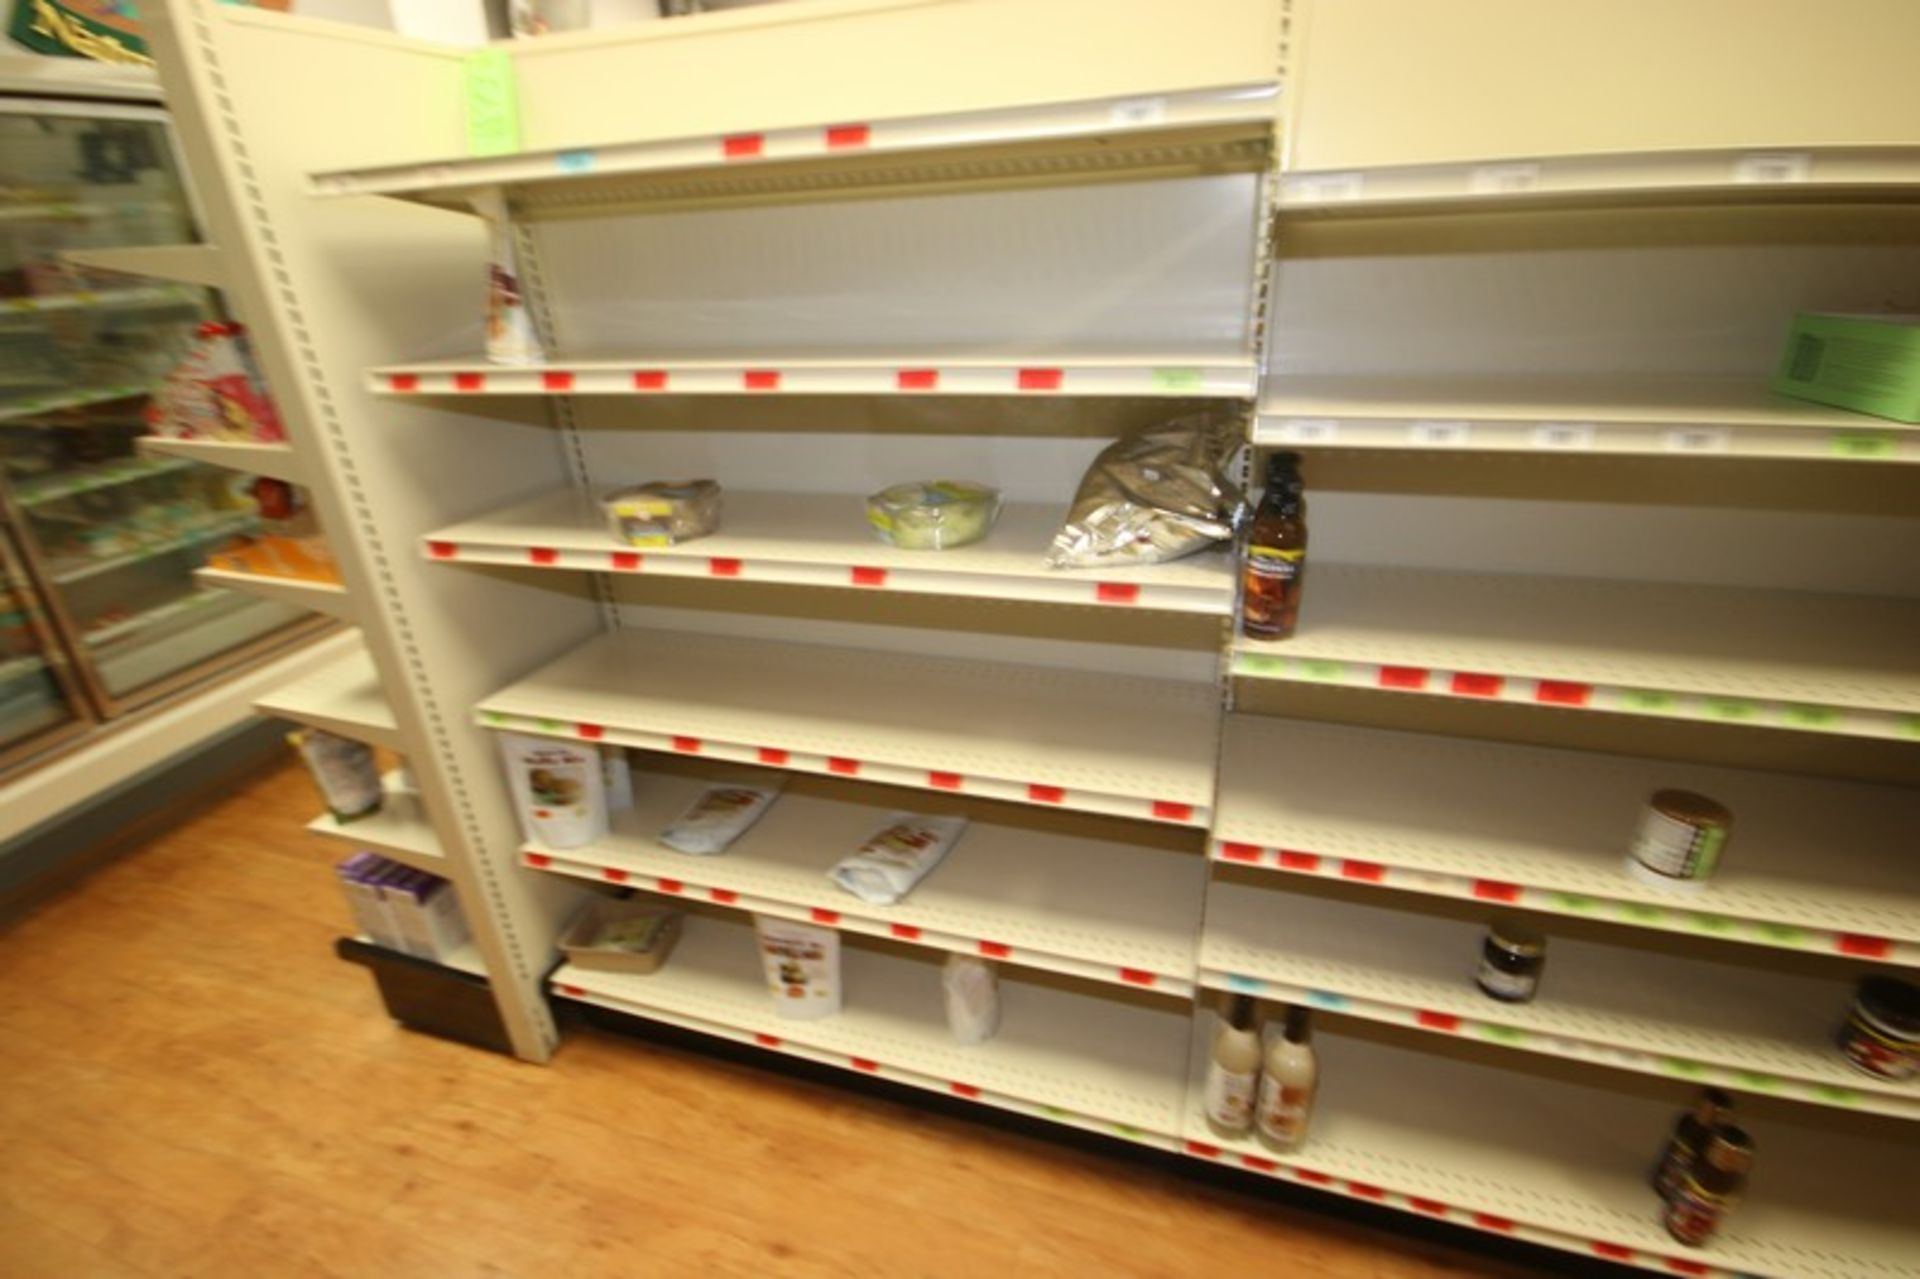 STORE INVENTORY! FULL LIST AVAILABLE SOON! (NOTE: Must be Paid for in Full & Picked Up by End of Day - Image 61 of 109